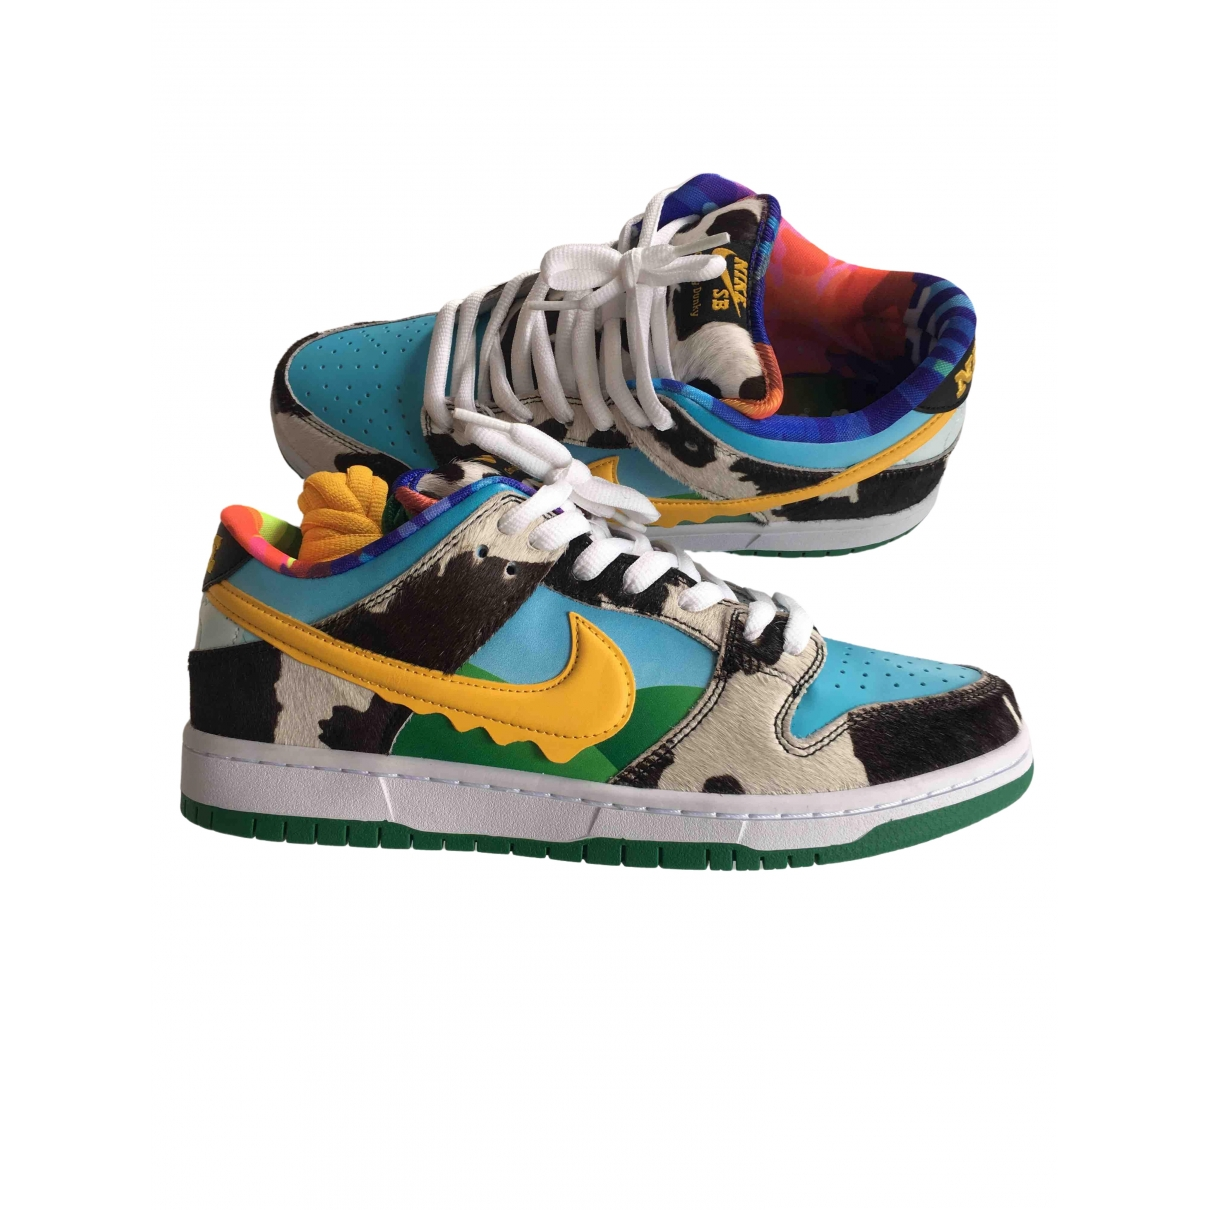 Nike N Multicolour Leather Trainers for Men 42.5 EU